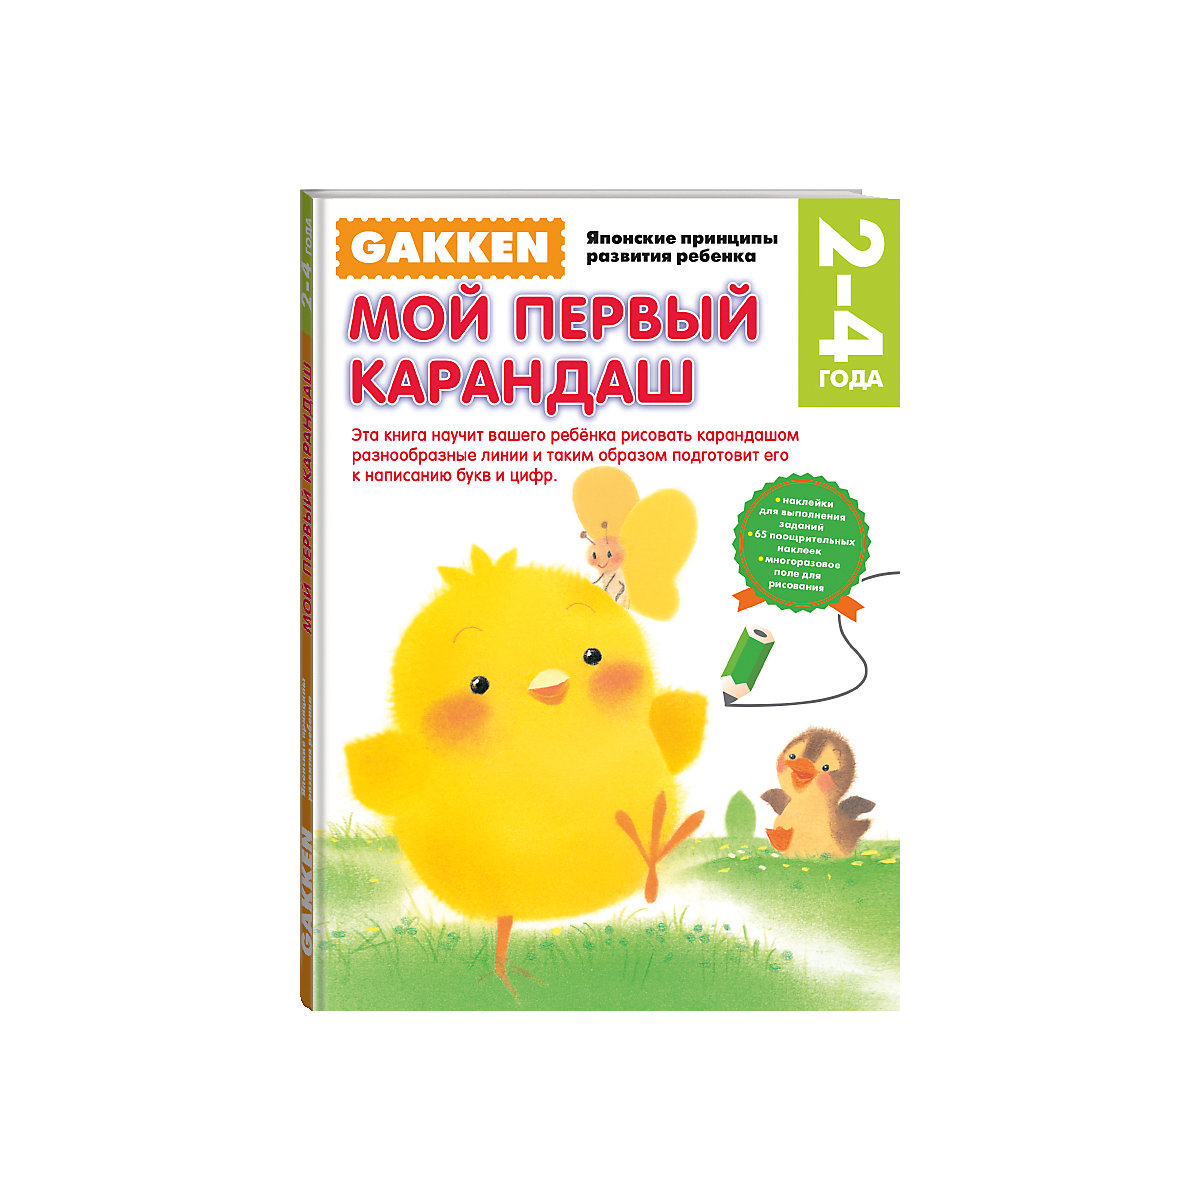 Books EKSMO 4753538 Children Education Encyclopedia Alphabet Dictionary Book For Baby MTpromo